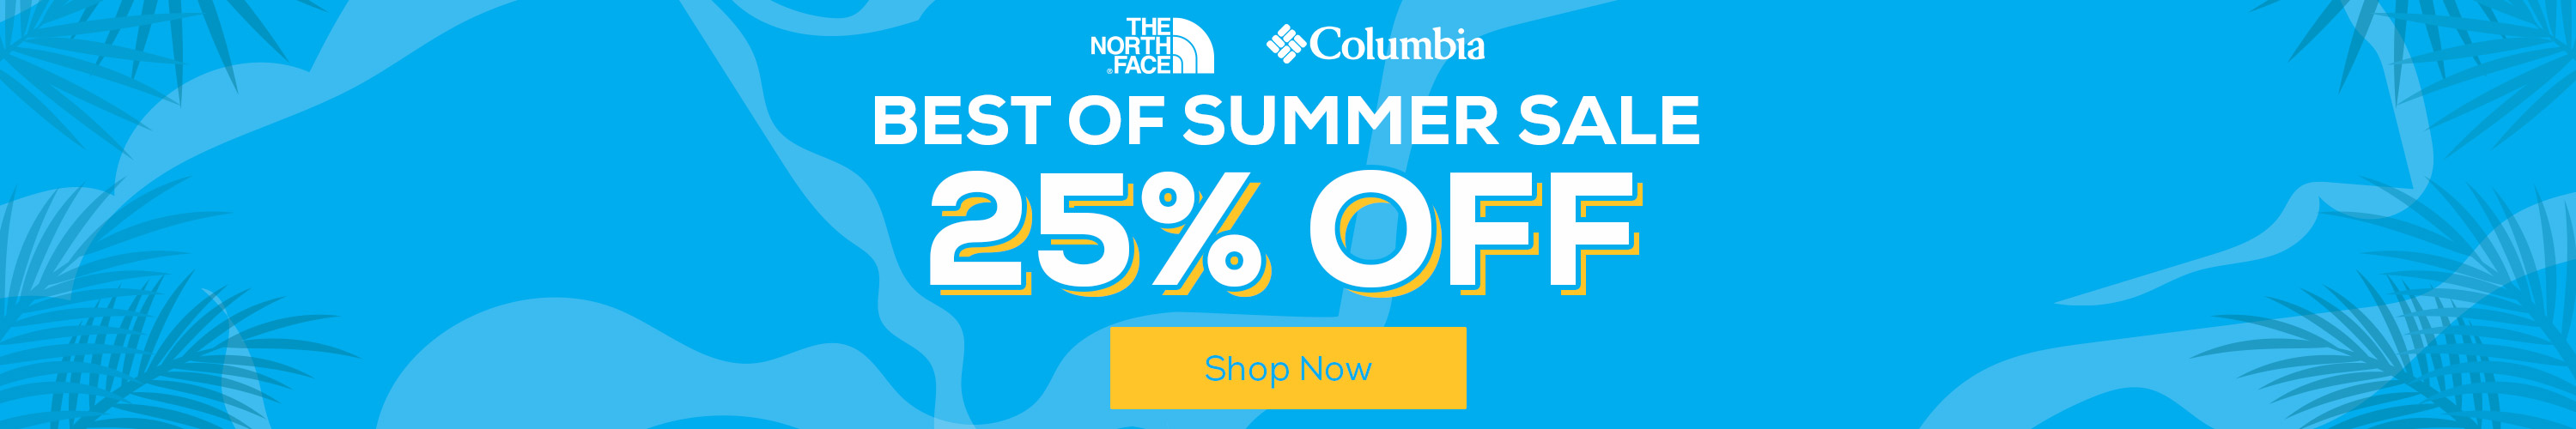 Best of Summer Sale 25% Off